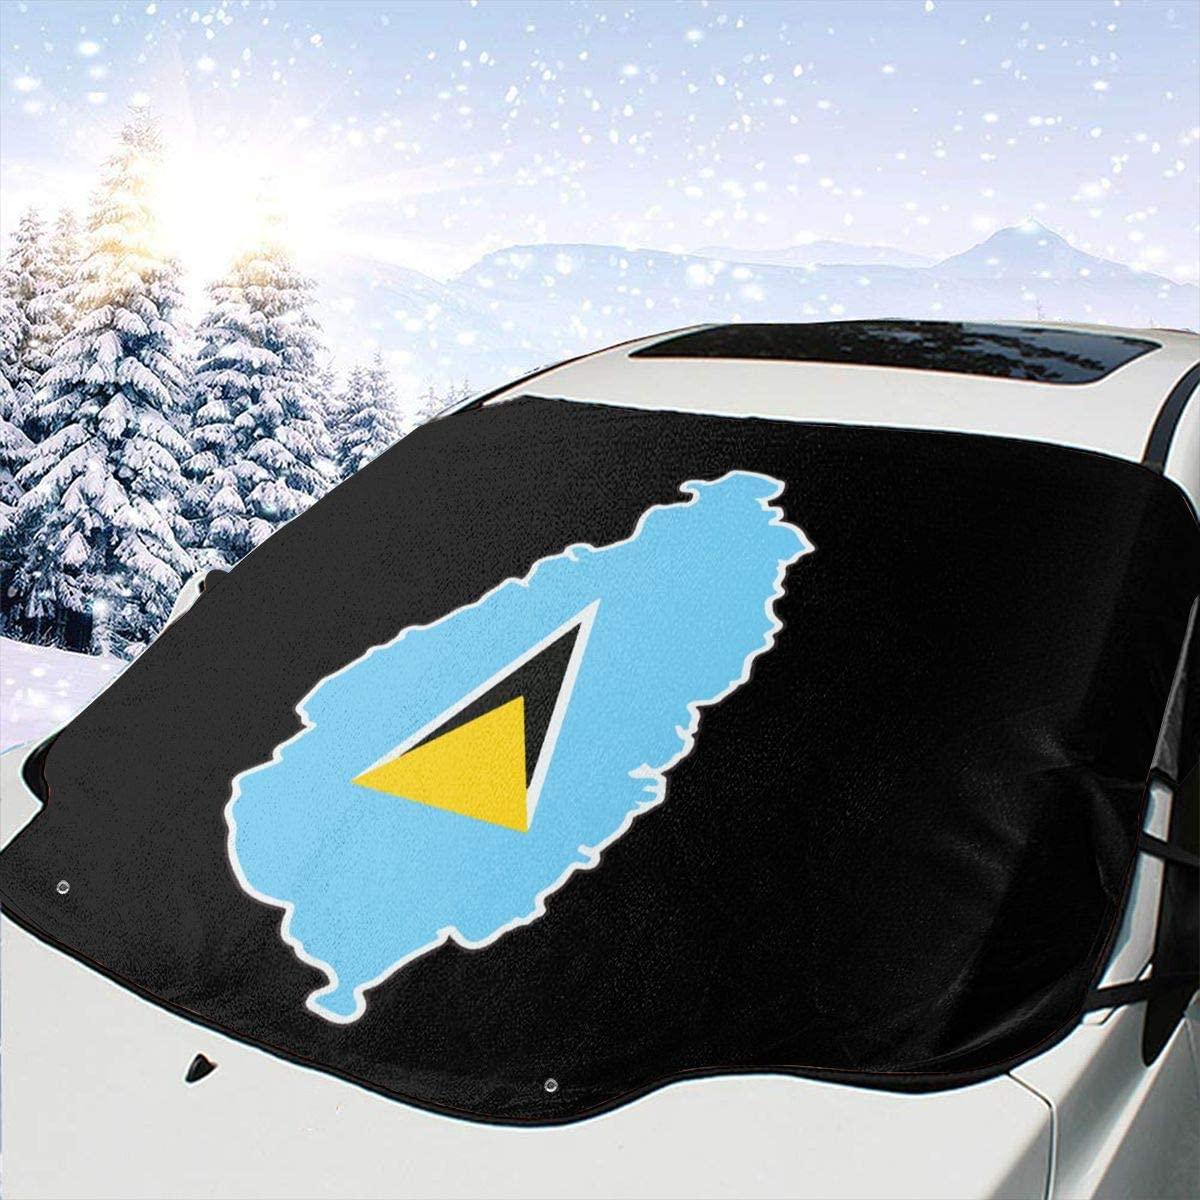 57.87 X 46.45 Inch Q89 St Lucia Flag and Map Car Snow Cover Windshield Cover Sunshade Suitable for All Cars and Seasons